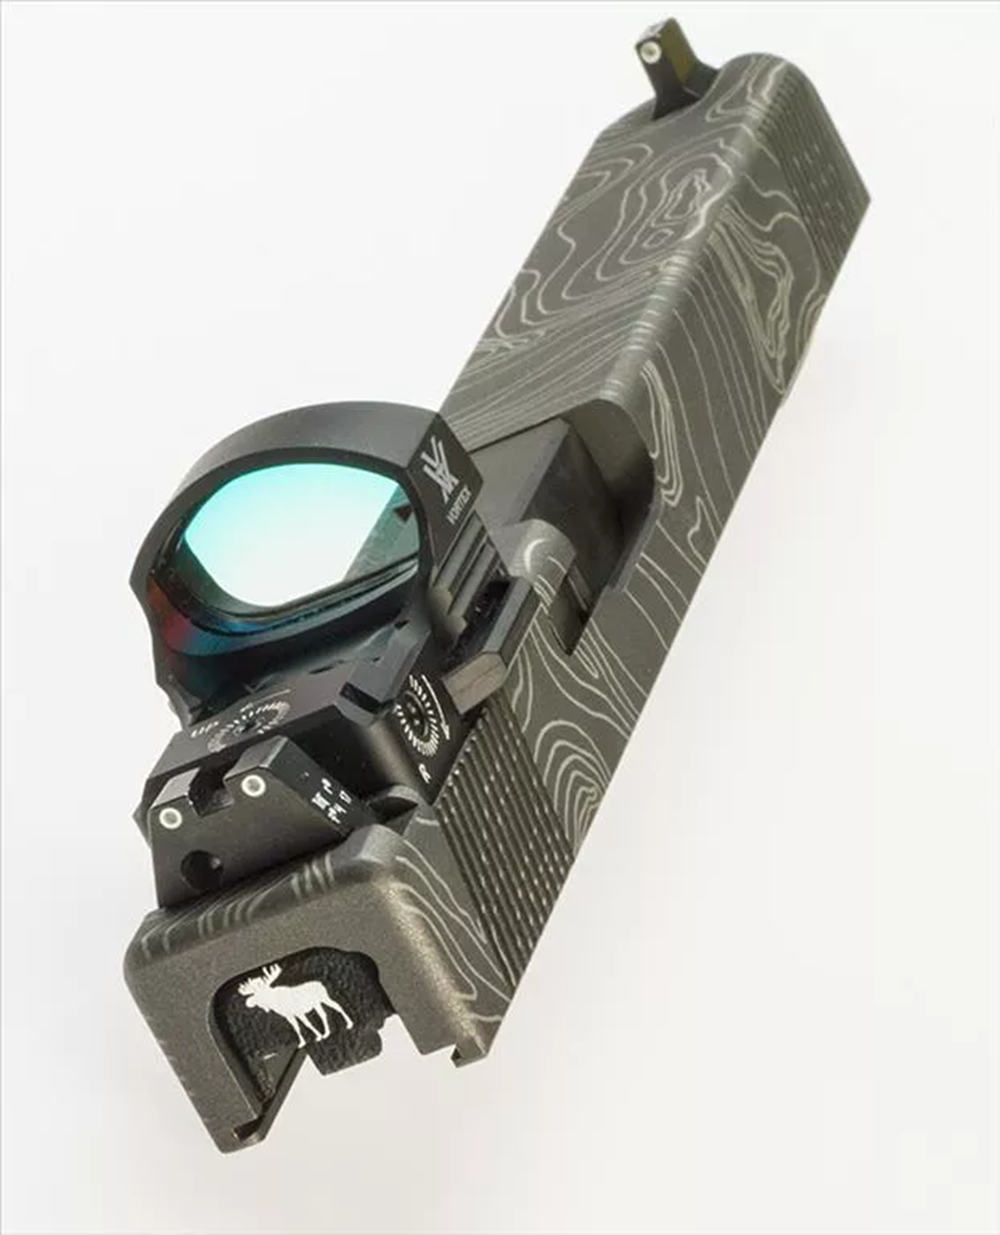 Combat Cut for Vortex Viper, with Trijicon Suppressor Height sights (*NOT recommended, due to insufficient height for co-witness). *Also featured: Tungsten Cerakote, Topographical laser engraving and custom 3-D engraved slide cover plate.